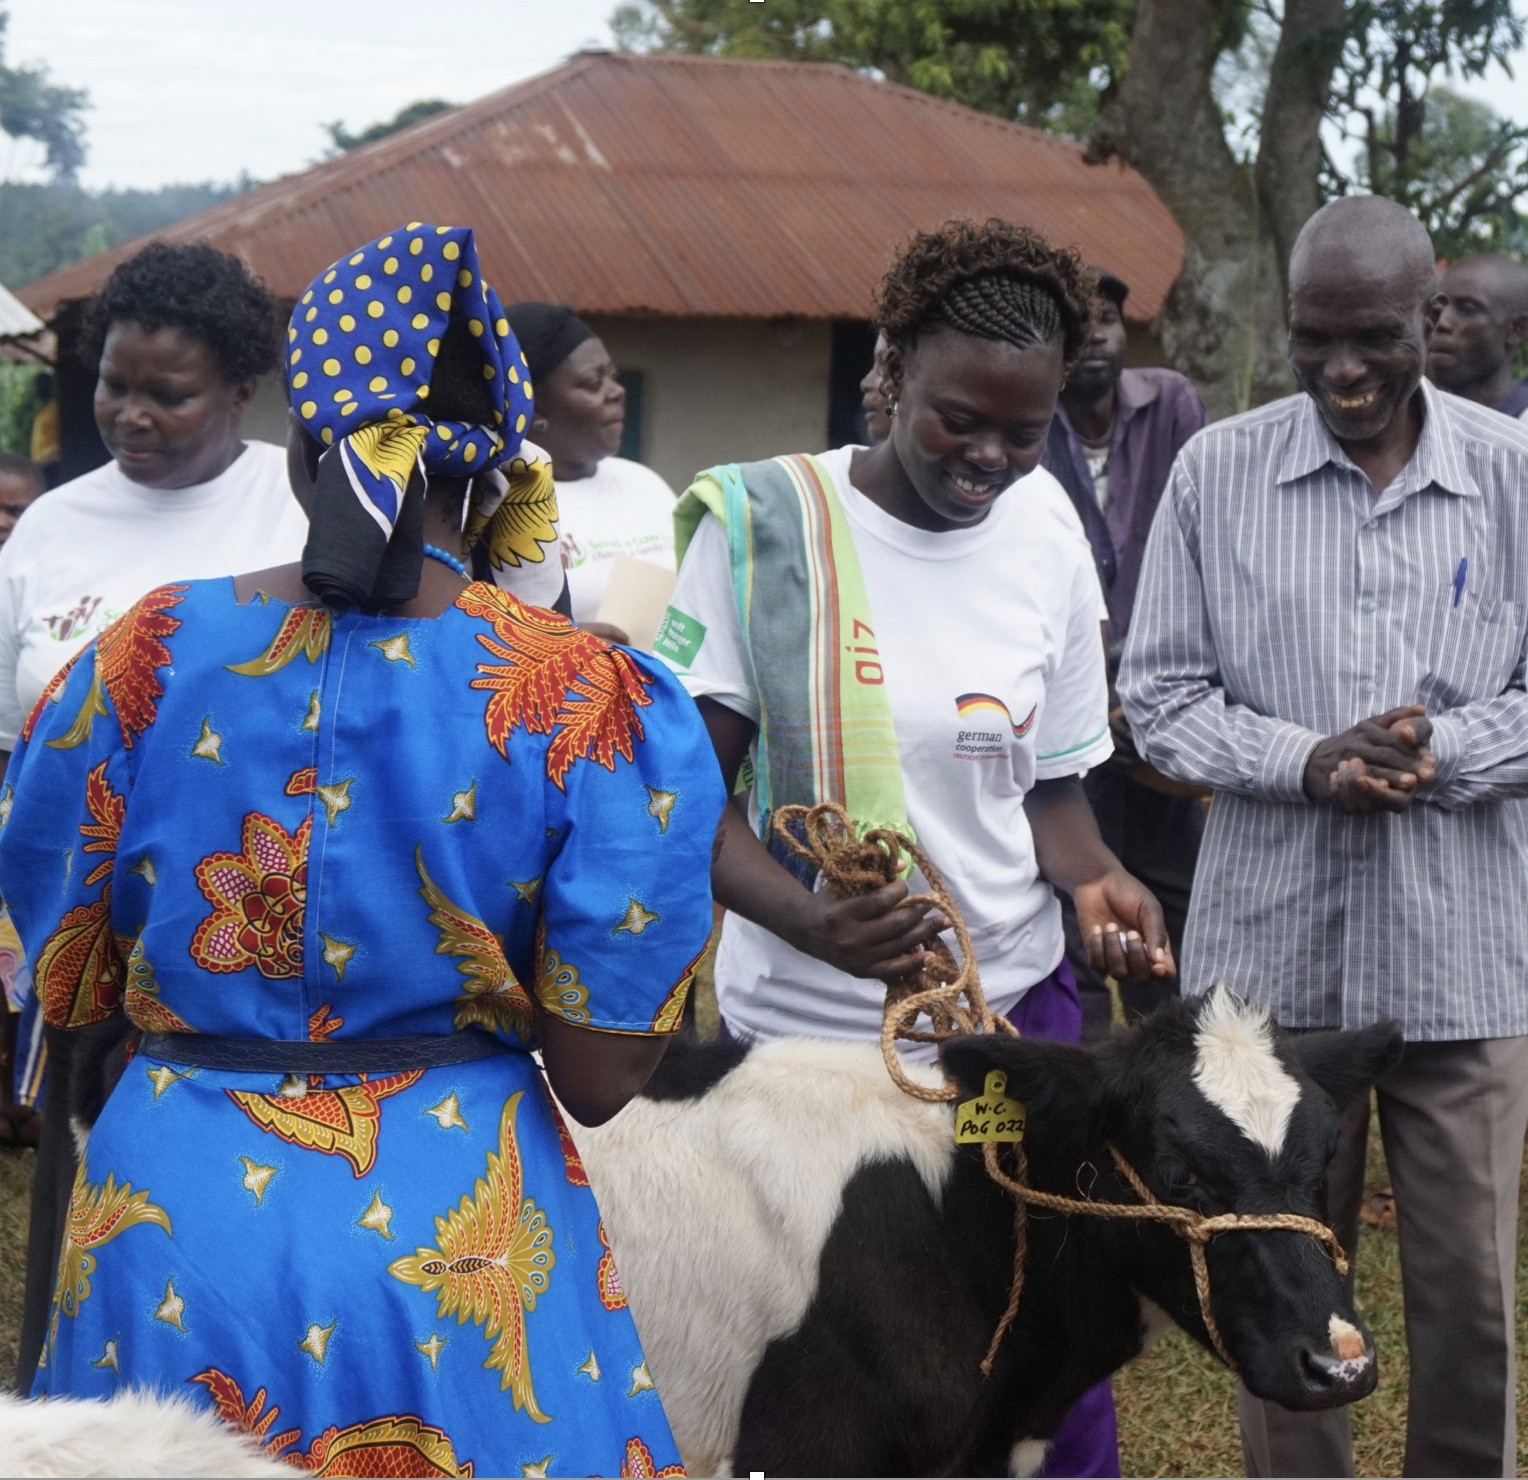 Send a Cow - Send a Cow is a U.K.-based organization that provides agricultural training, education and livestock in several African countries, including Kenya. U.S. Board of Trustees Chair and PC(USA) ruling elder Robyn Davis Sekula of New Albany, Indiana, traveled with Send a Cow to Kenya in 2017 and is introducing the organization to Presbyterians and other churches. The organization works intensely with local self-help groups, offering training and education that aims to build sustainable livelihoods for Kenyan families. Send a Cow is in the midst of a three-year project in the Kakrao region in Western Kenya, working particularly with women who are HIV positive to help them create a food supply to feed themselves and their children. Through their work, the Send a Cow staff help women build confidence and fight gender inequality. You can read the story here that Robyn has written for Louisville-area magazine Extol, and you can email her at robynds@live.com.